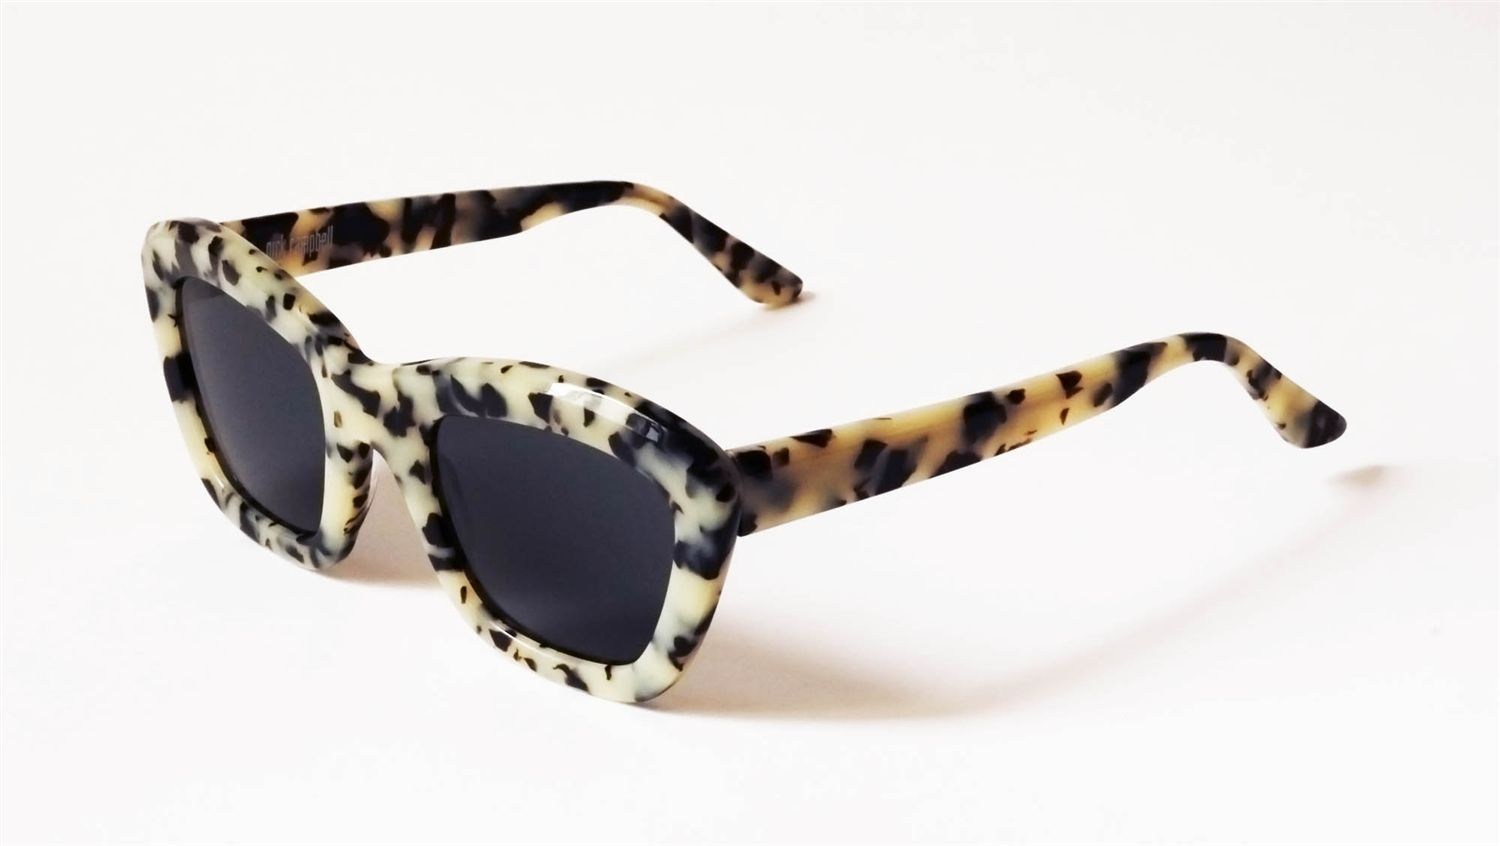 8f0b0202b0 Chloe - Cookies and Cream with Solid Lens - Nick Campbell eyewear ...